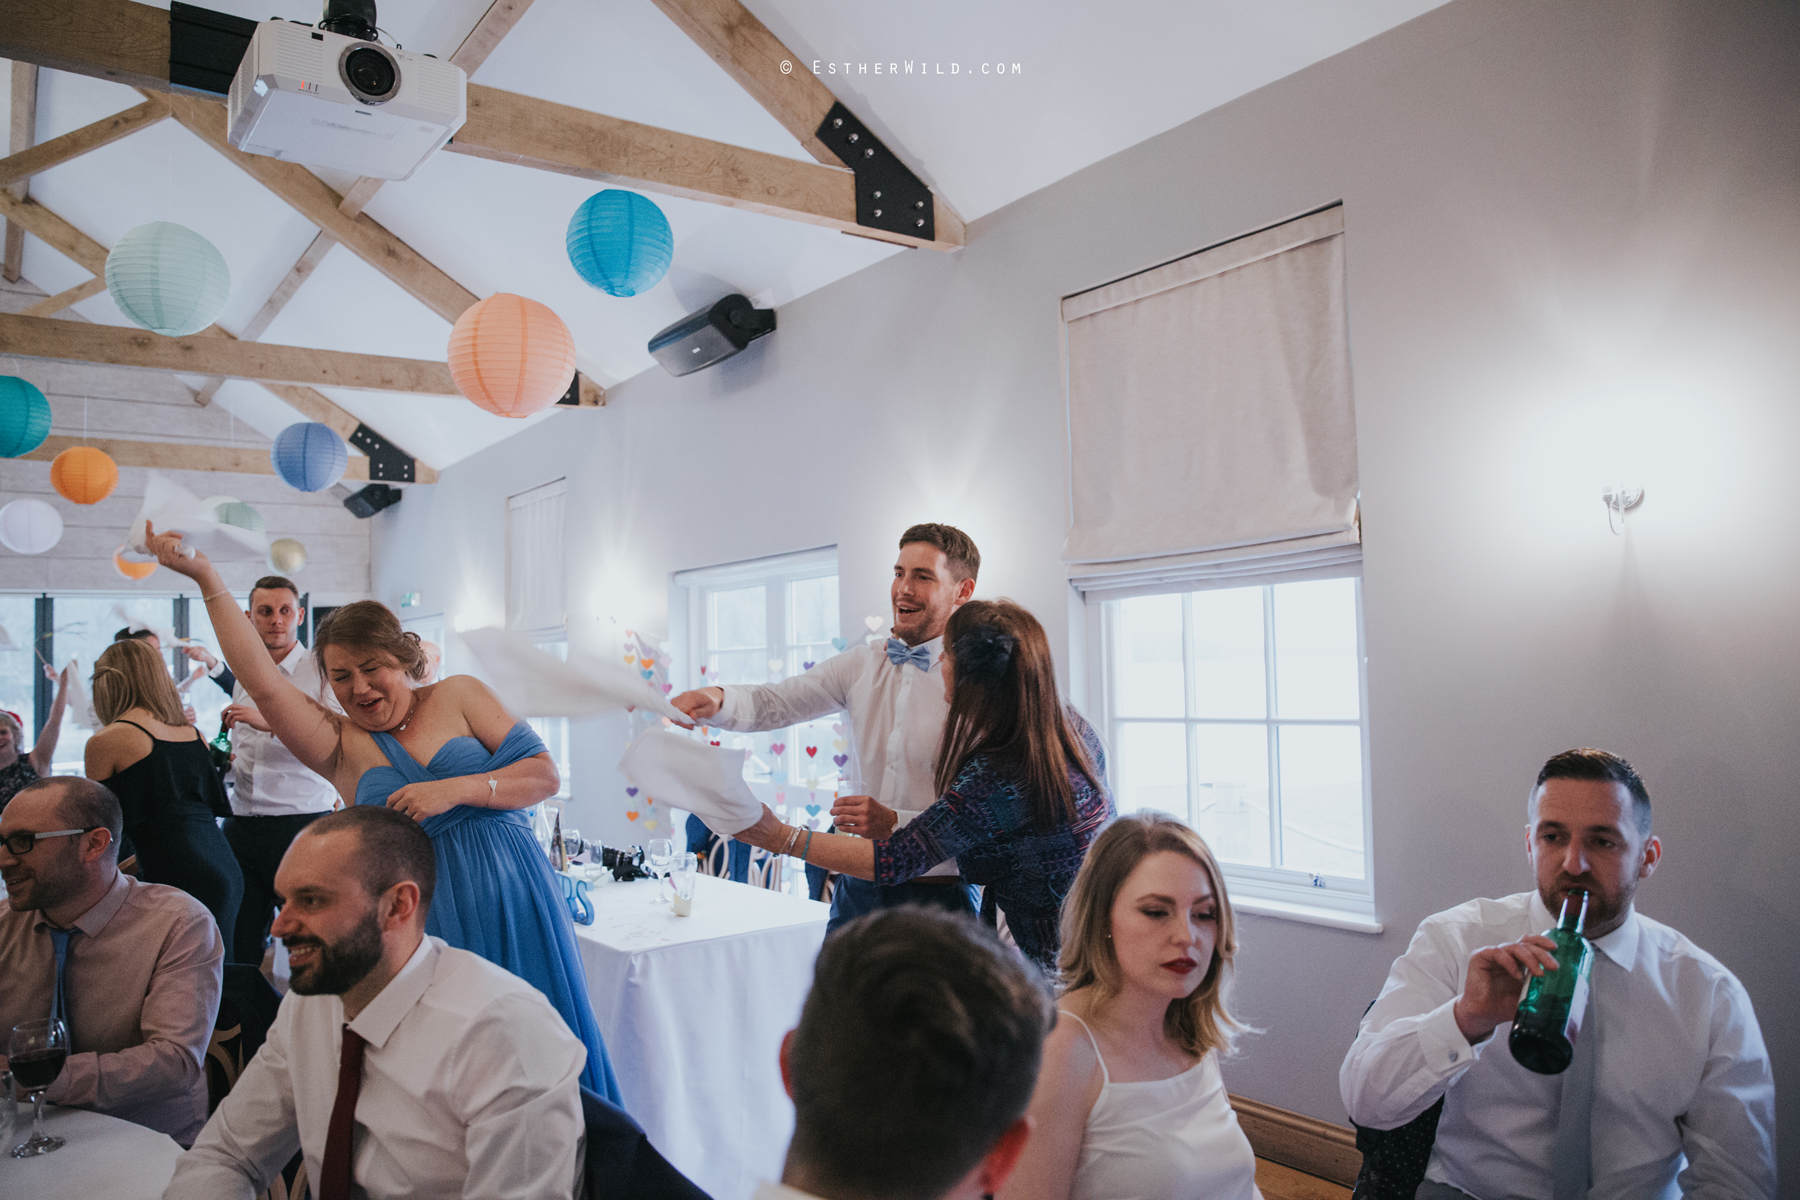 The_BoatHouse_Wedding_Venue_Ormesby_Norfolk_Broads_Boat_Wedding_Photography_Esther_Wild_Photographer_IMG_3008.jpg